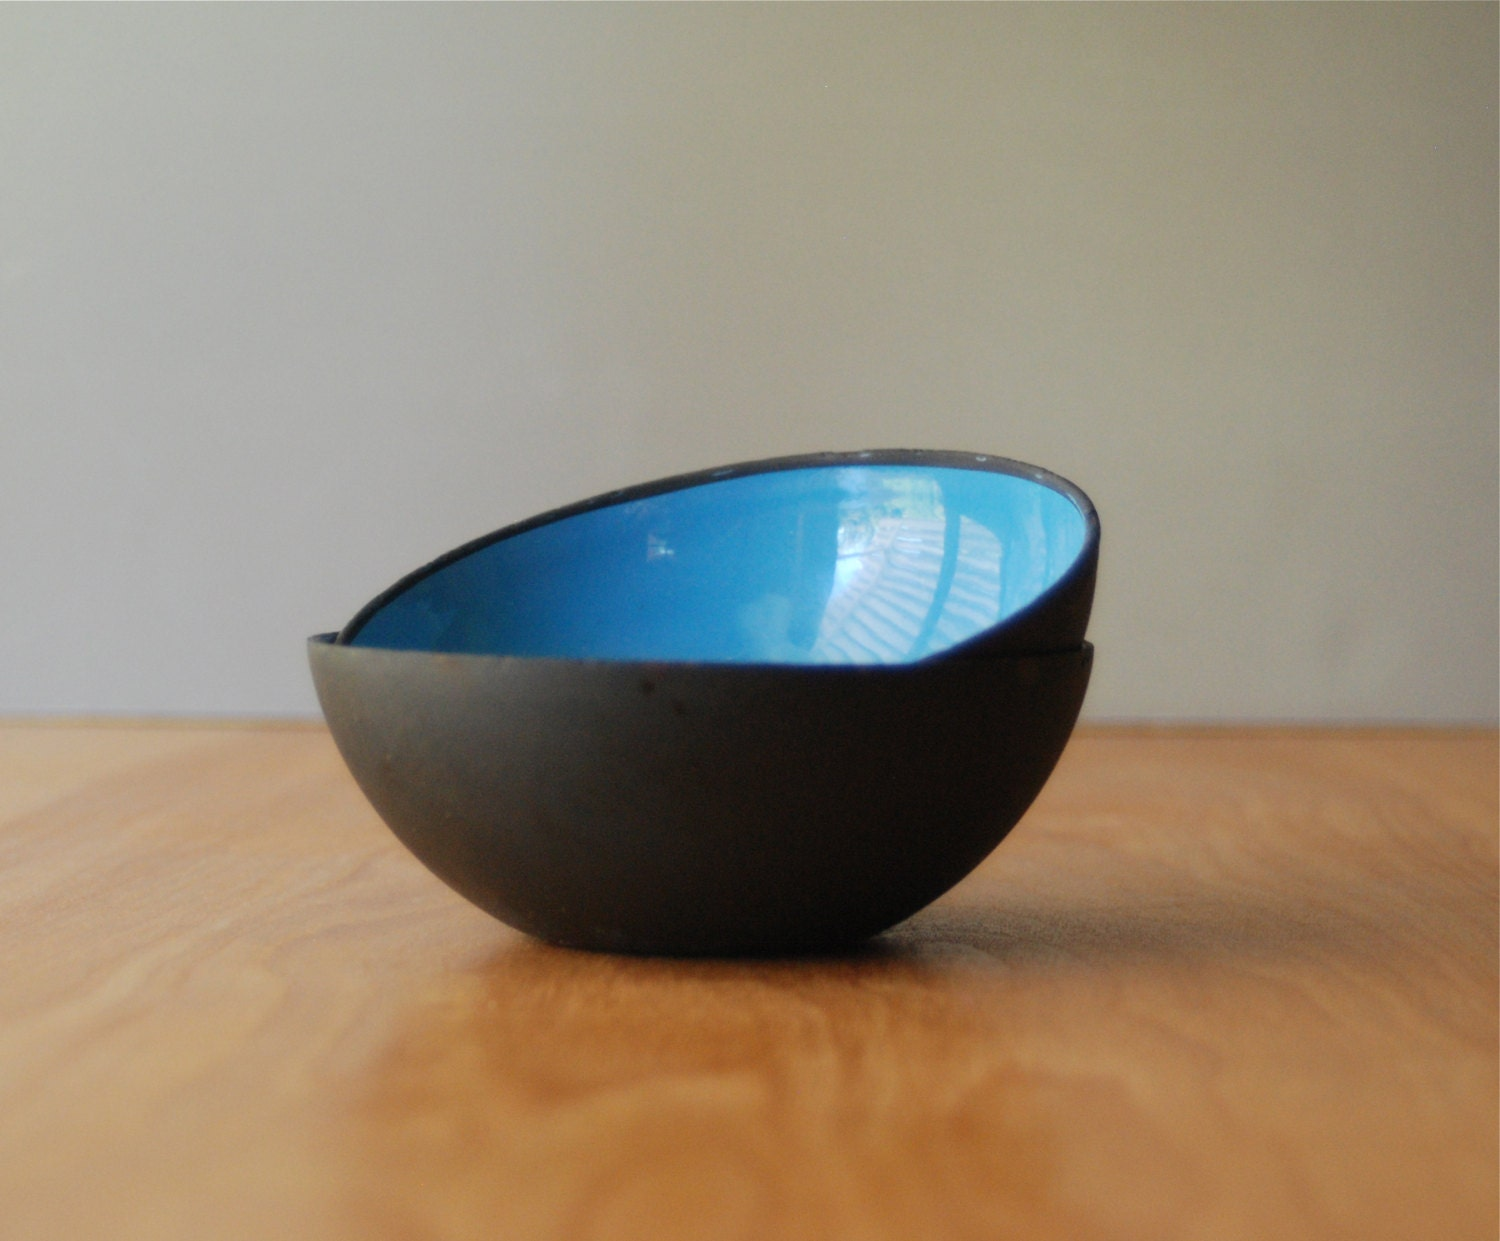 Mid Century Modern Blue and Black Enamel Bowls - Husqvarna - DipperVintage